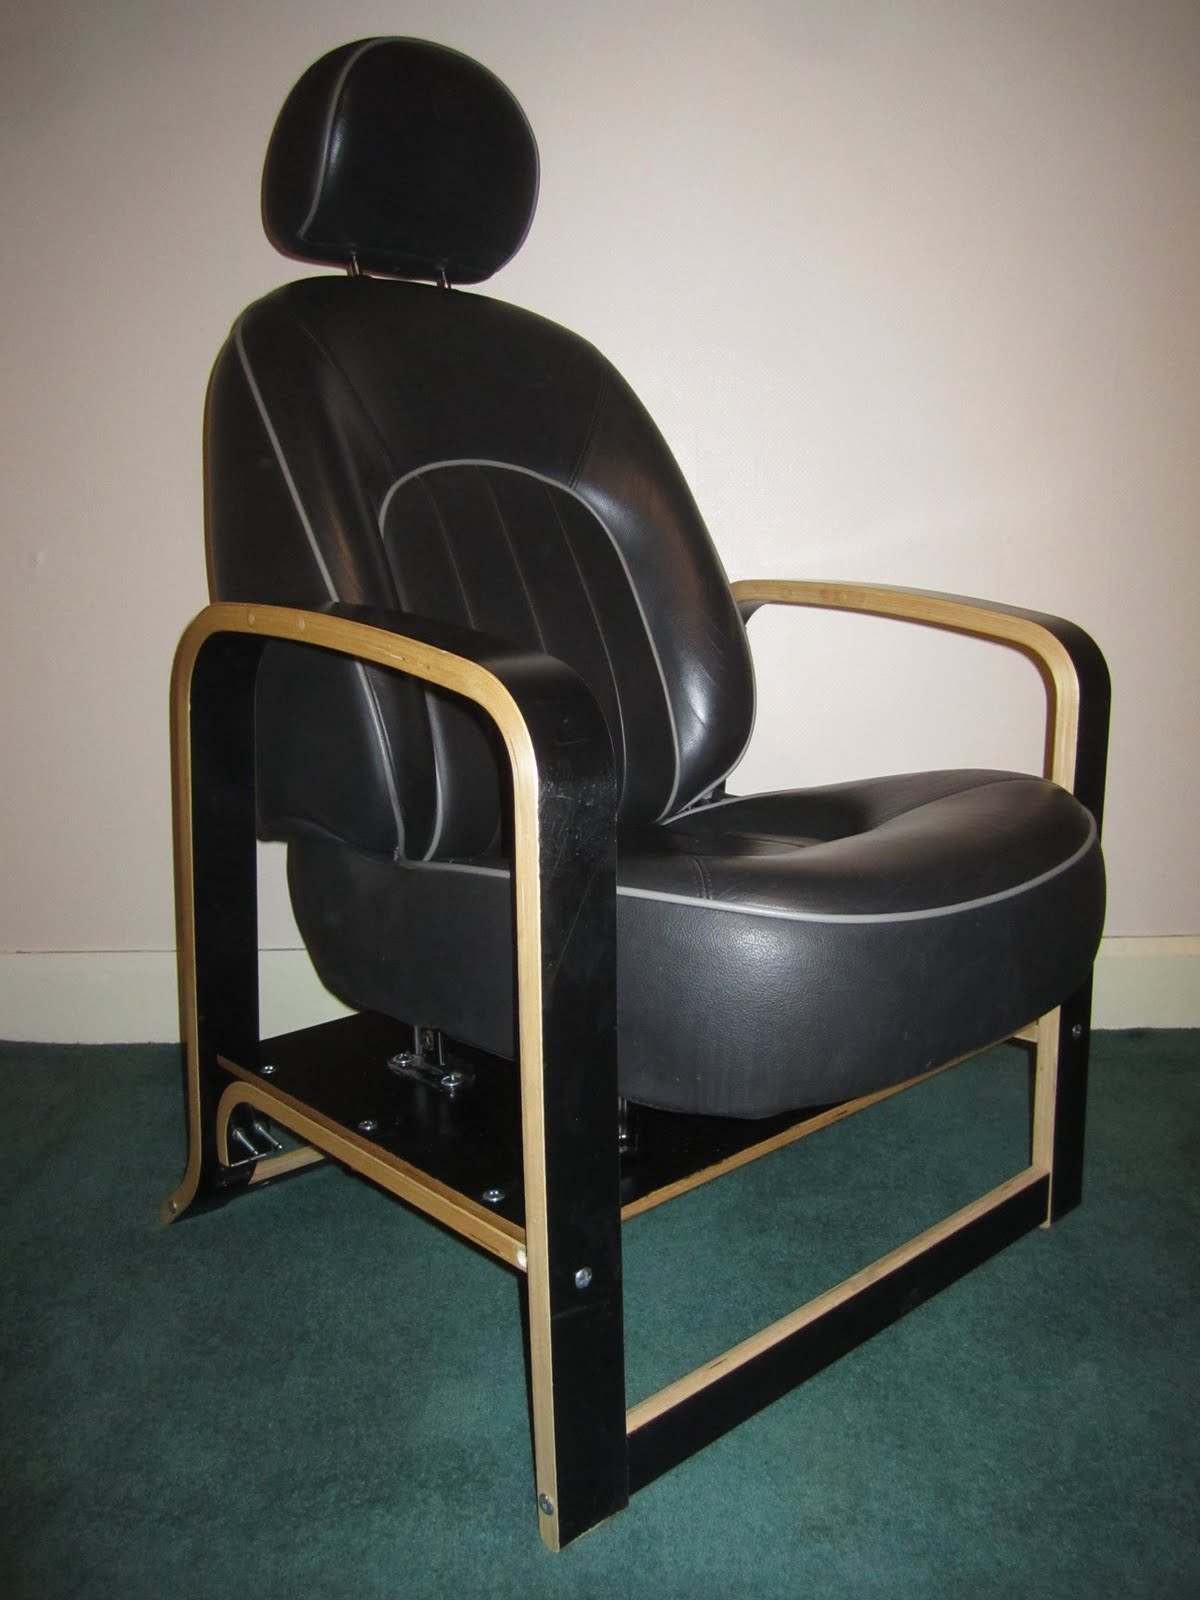 My Ikea Hack follows the same theme utilising a black leather Rover car seat and an Ikea Poang chair frame for the legs and arm rests. & Rover/Poang Chair - IKEA Hackers